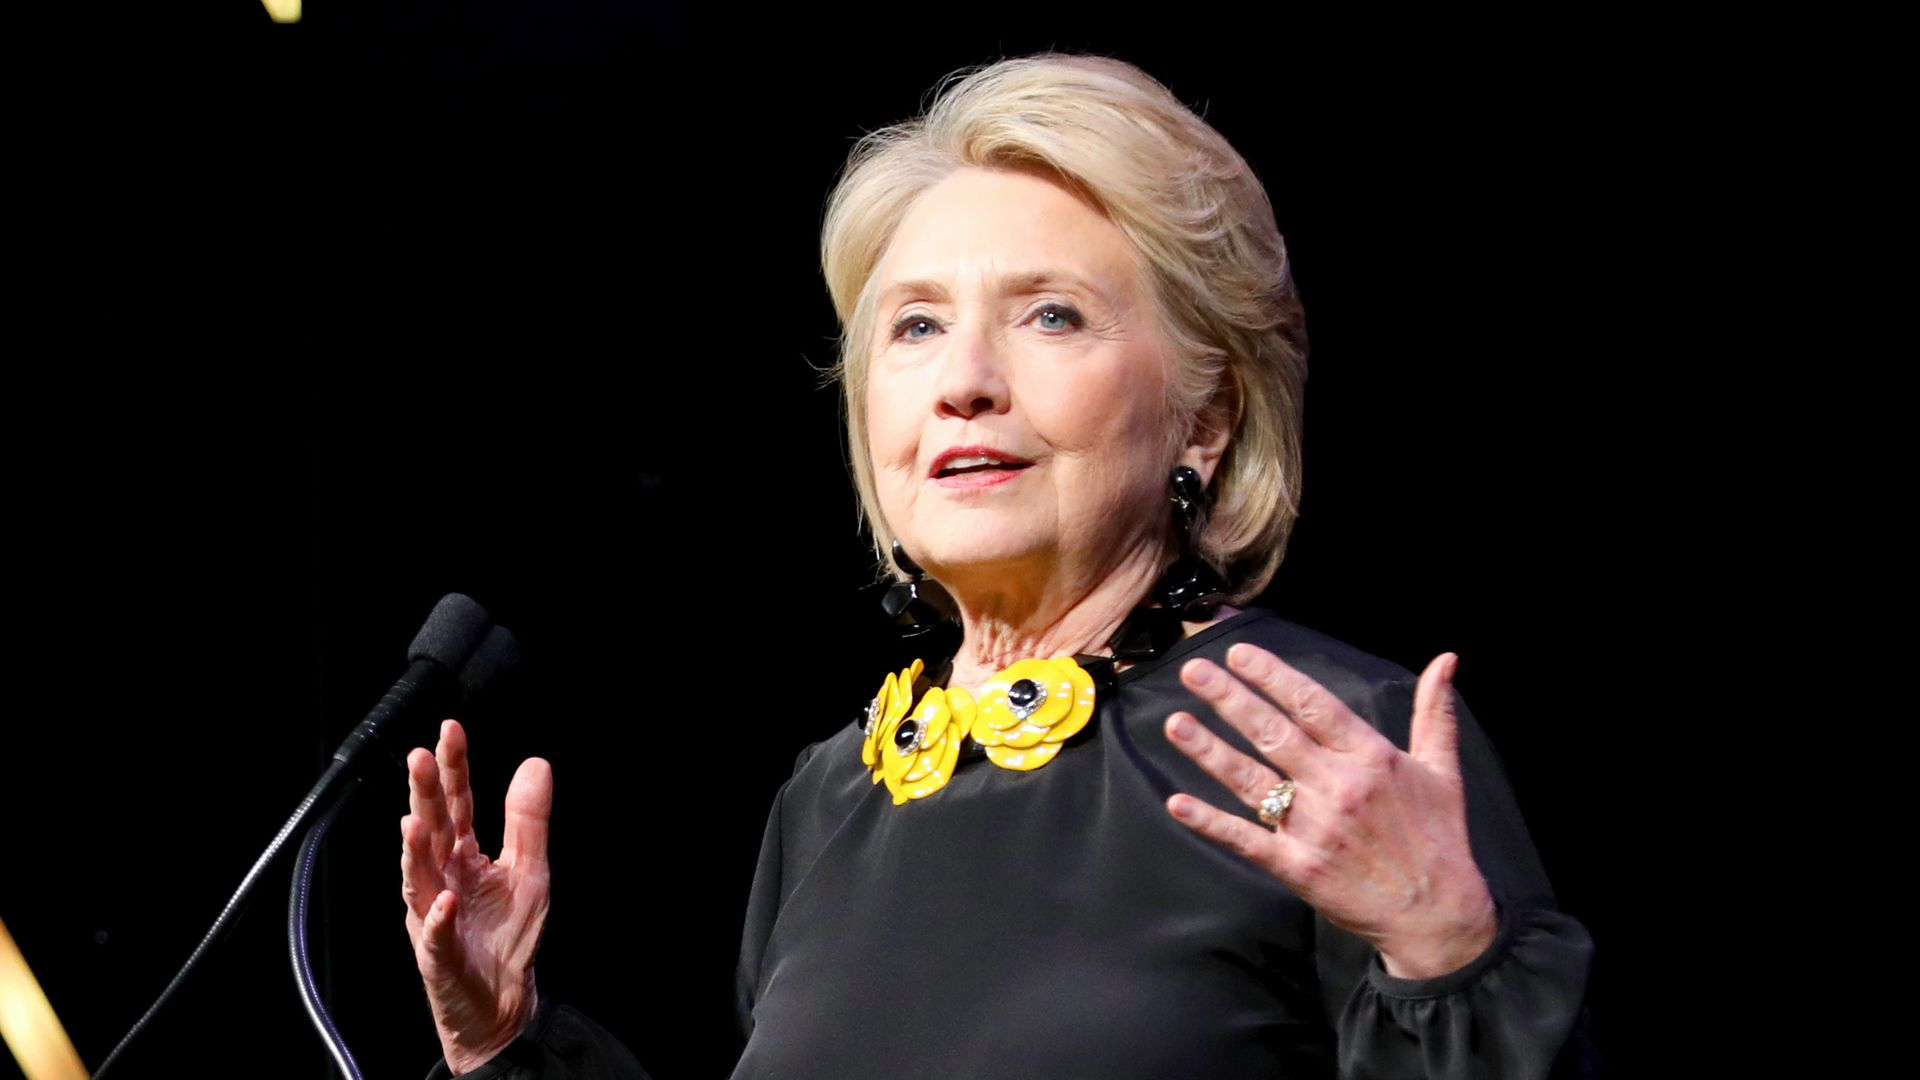 Hillary Clinton says she will continue to speak out on issues.